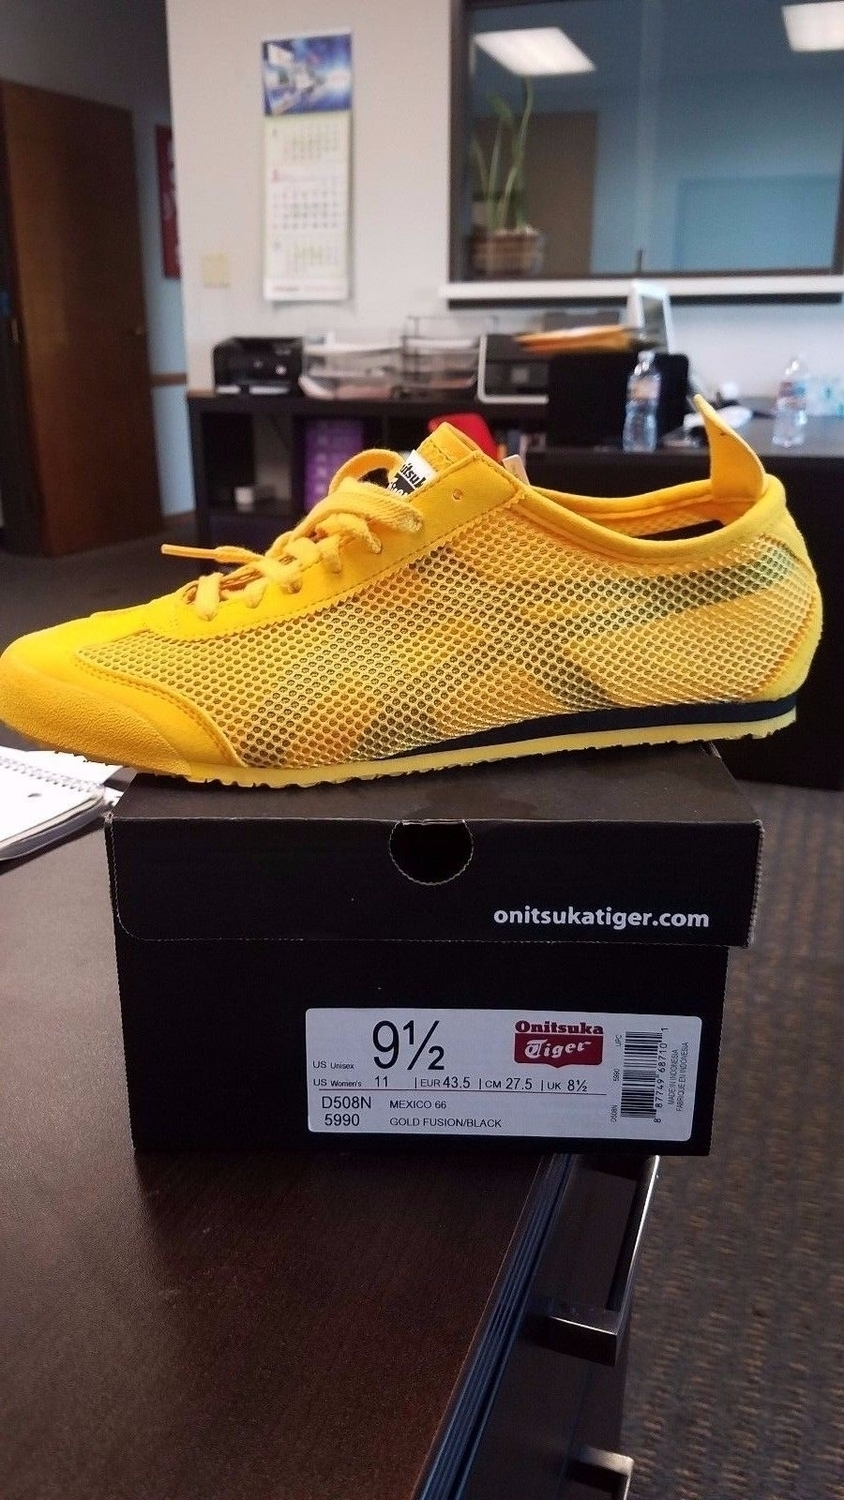 big sale 19386 a7dae Request BRAND NEW ASICS ONITSUKA TIGER D508N 5990 Mexico 66 ...